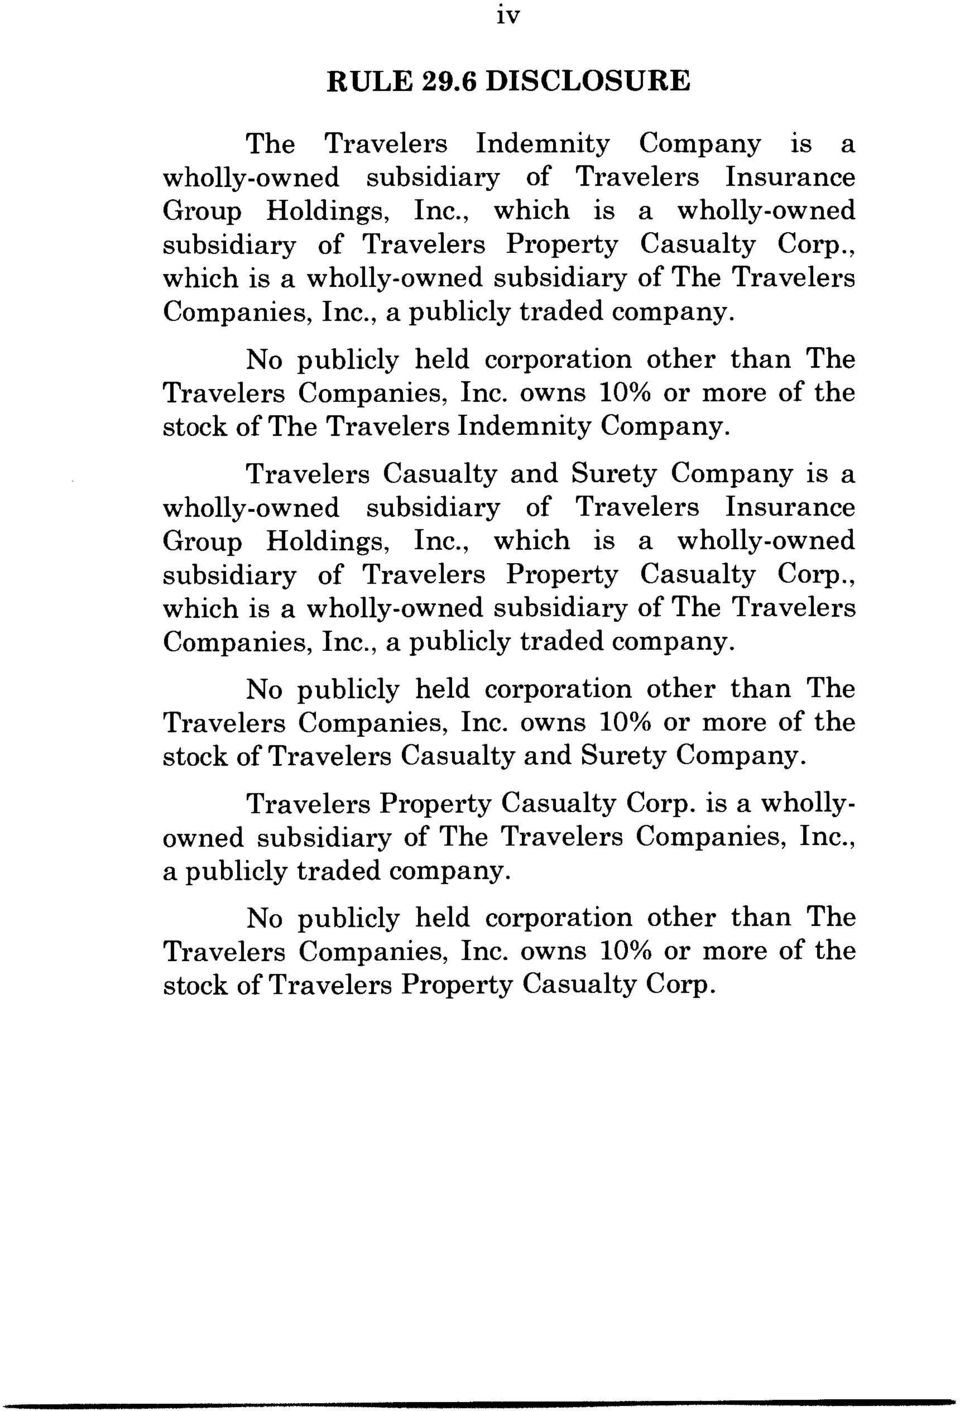 No publicly held corporation other than The Travelers Companies, Inc. owns 10% or more of the stock of The Travelers Indemnity Company.